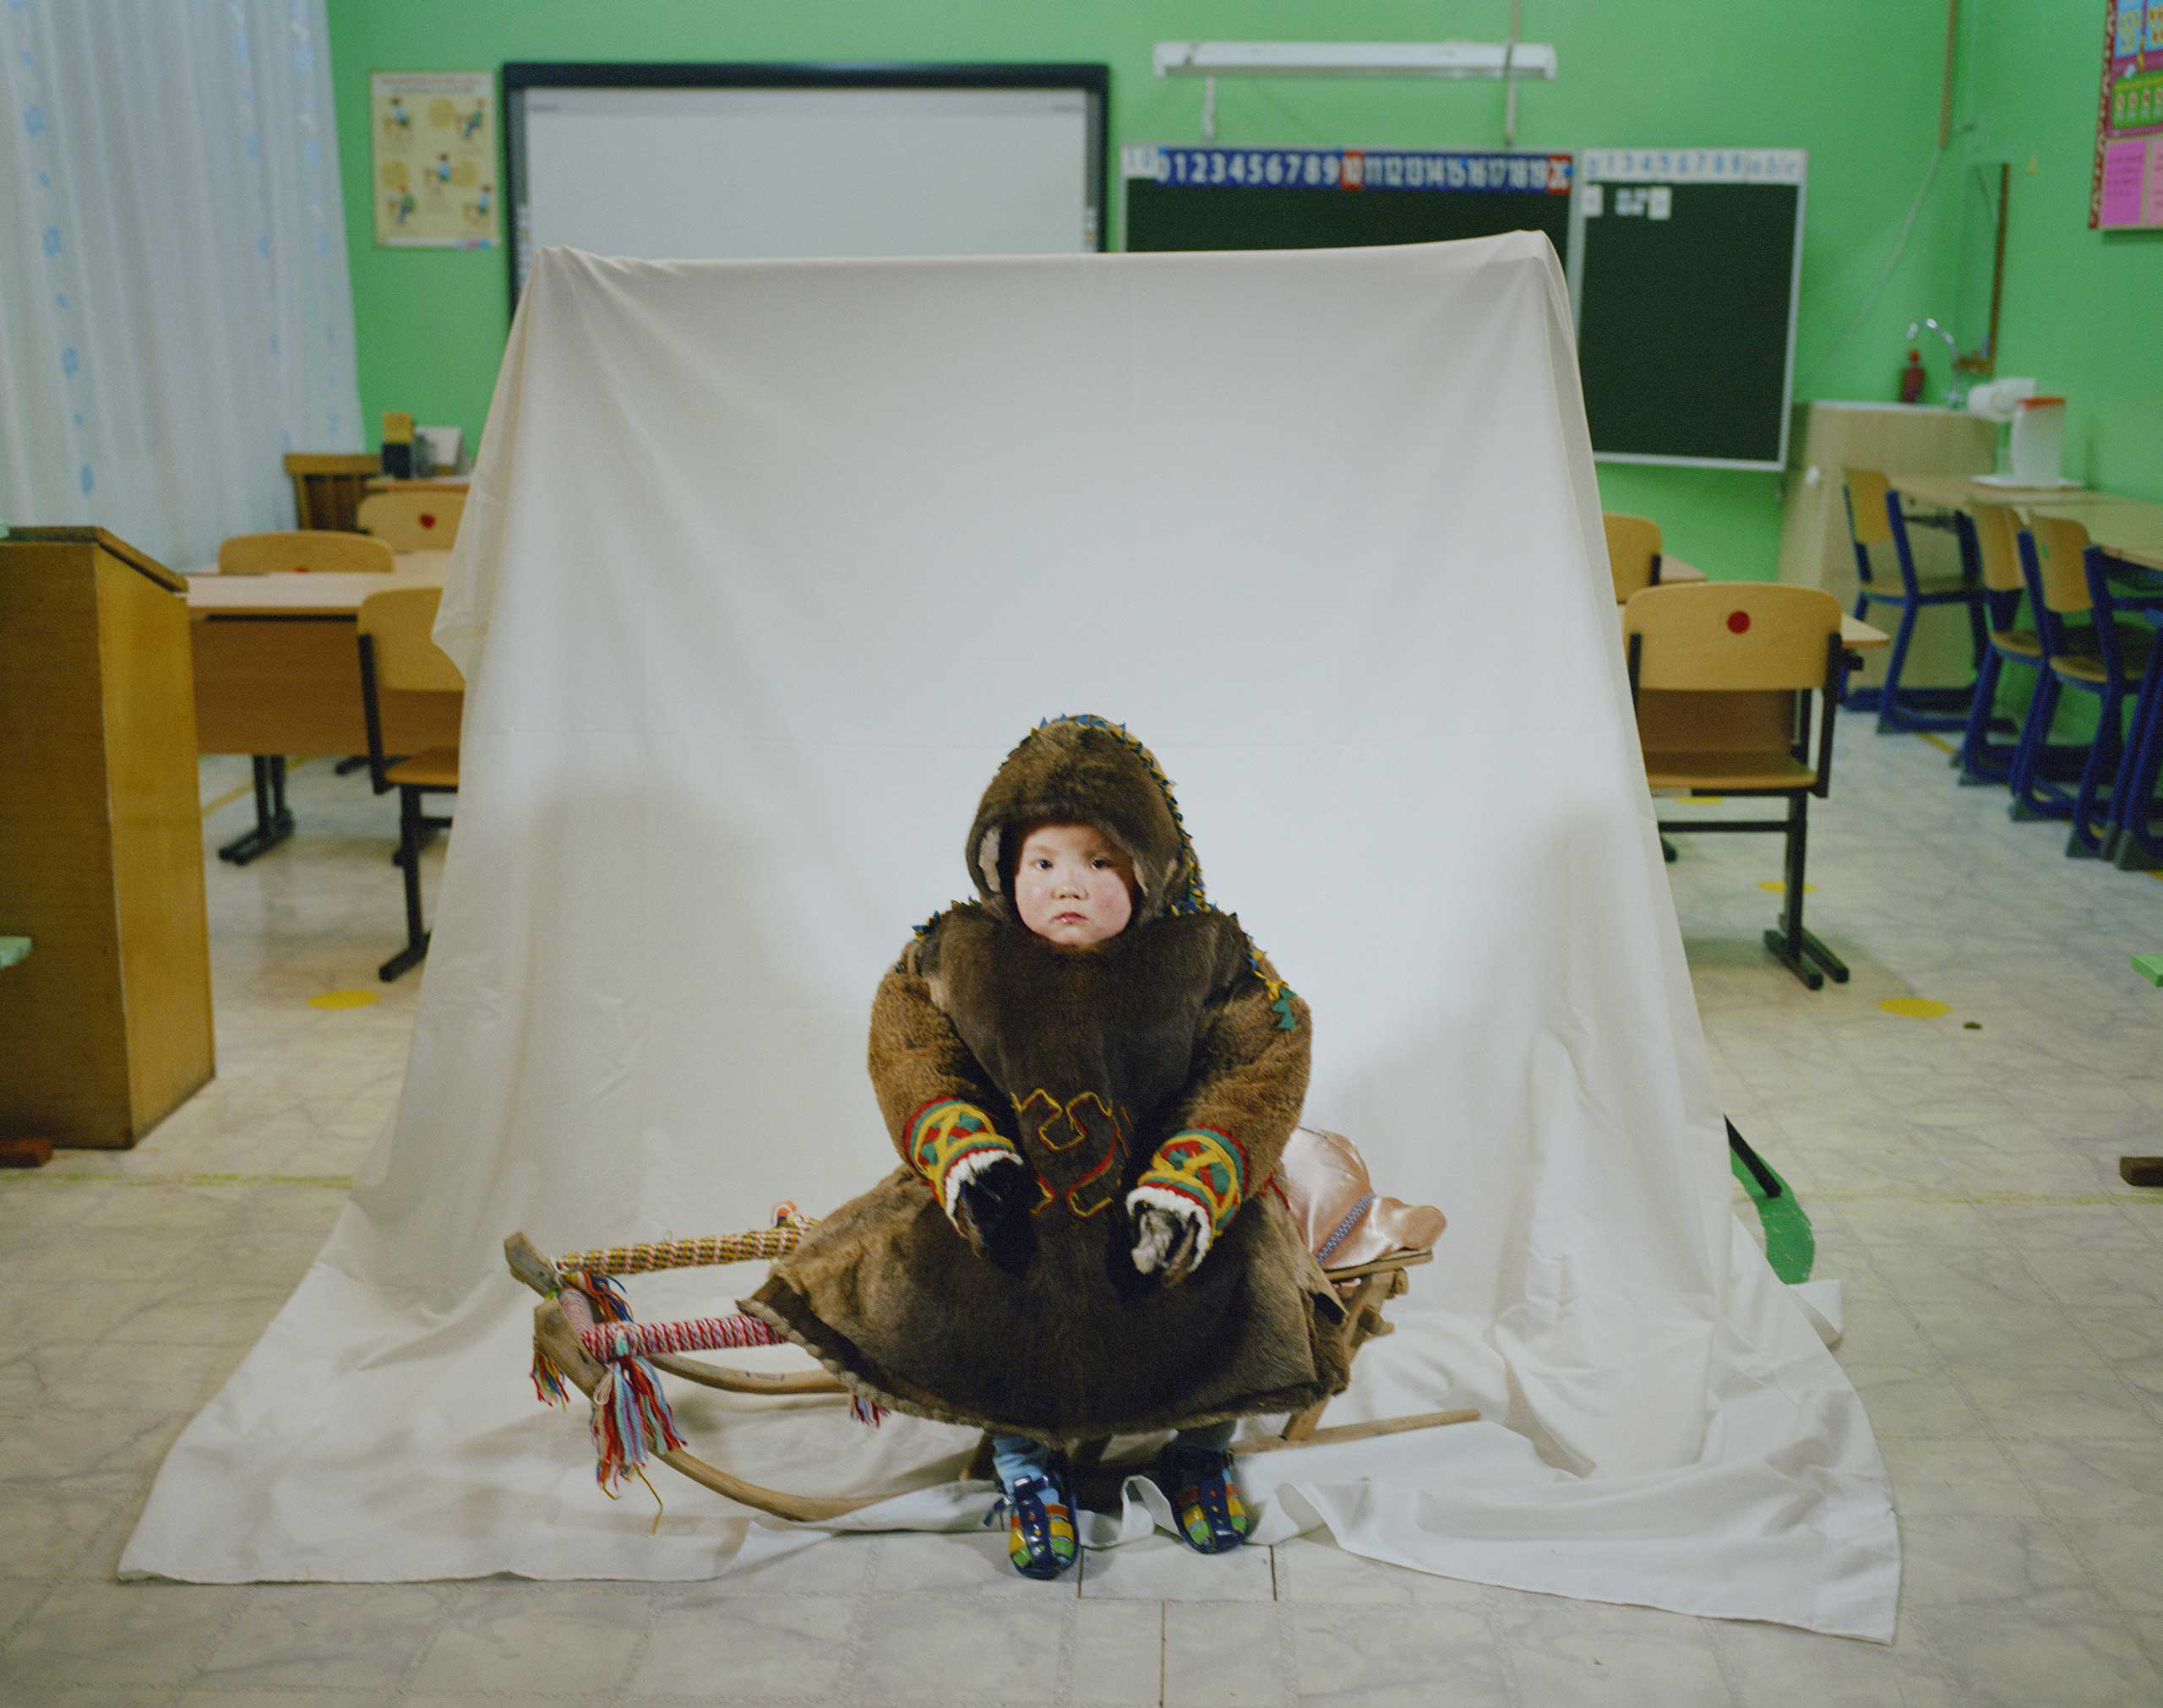 A student on the sledge in the traditional costume.